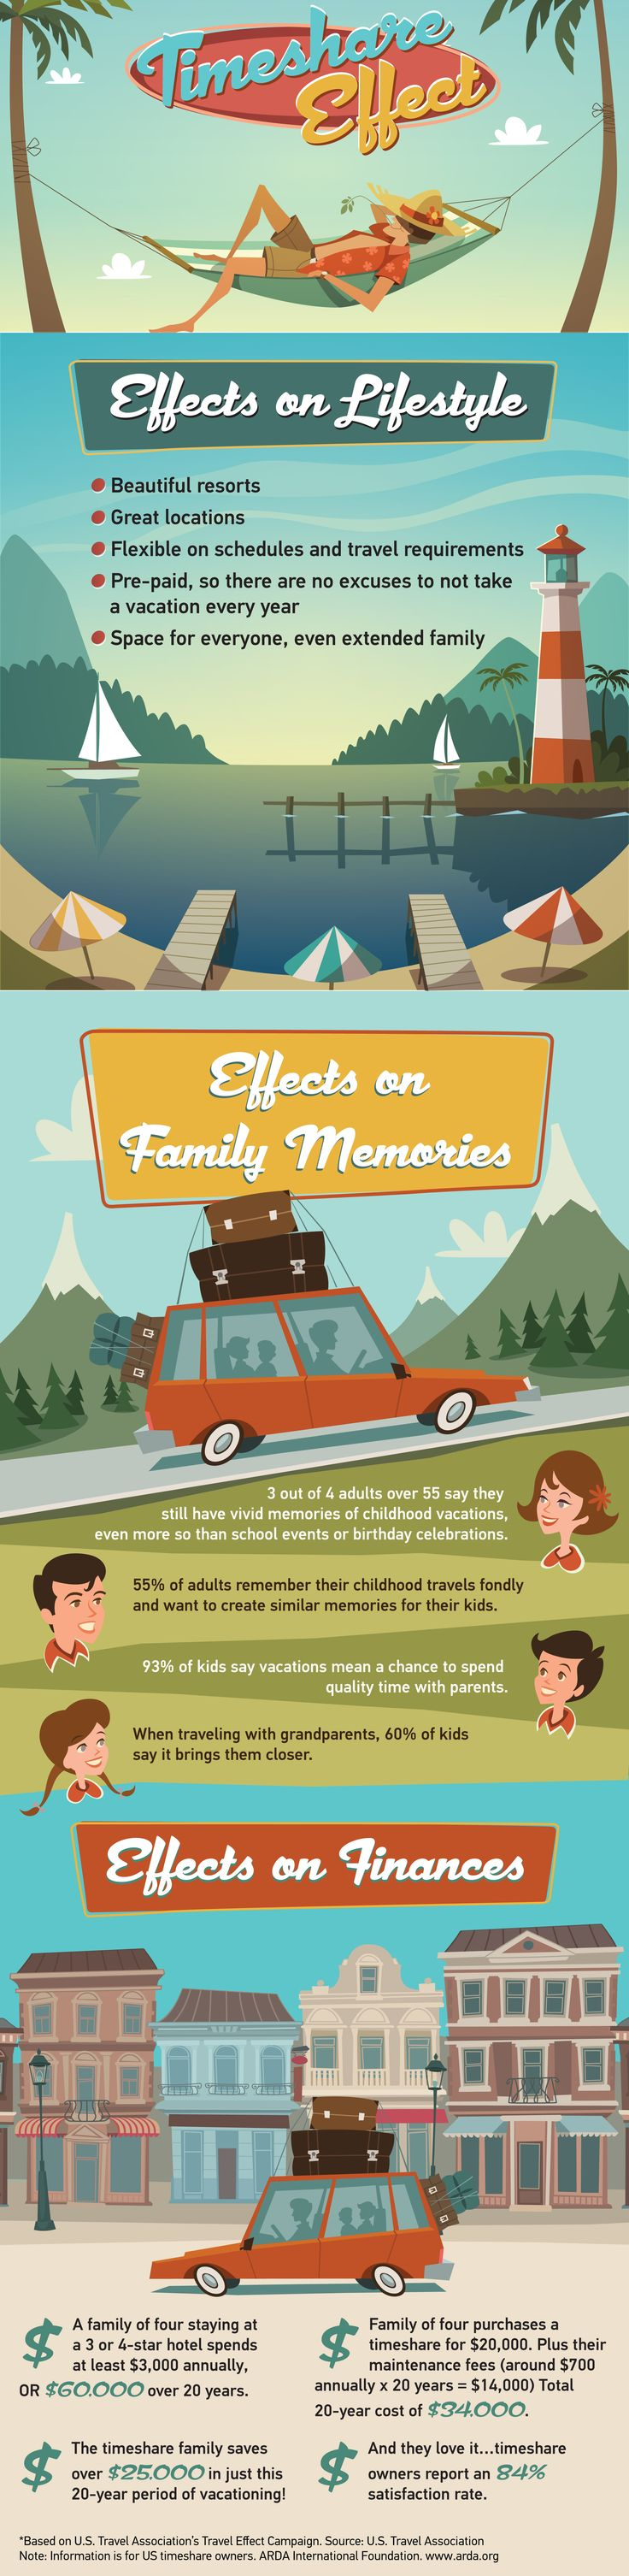 Check out the #TimeshareEffect and learn how a #timeshare #vacation can positively affect your #lifestyle, #family memories, and #finances